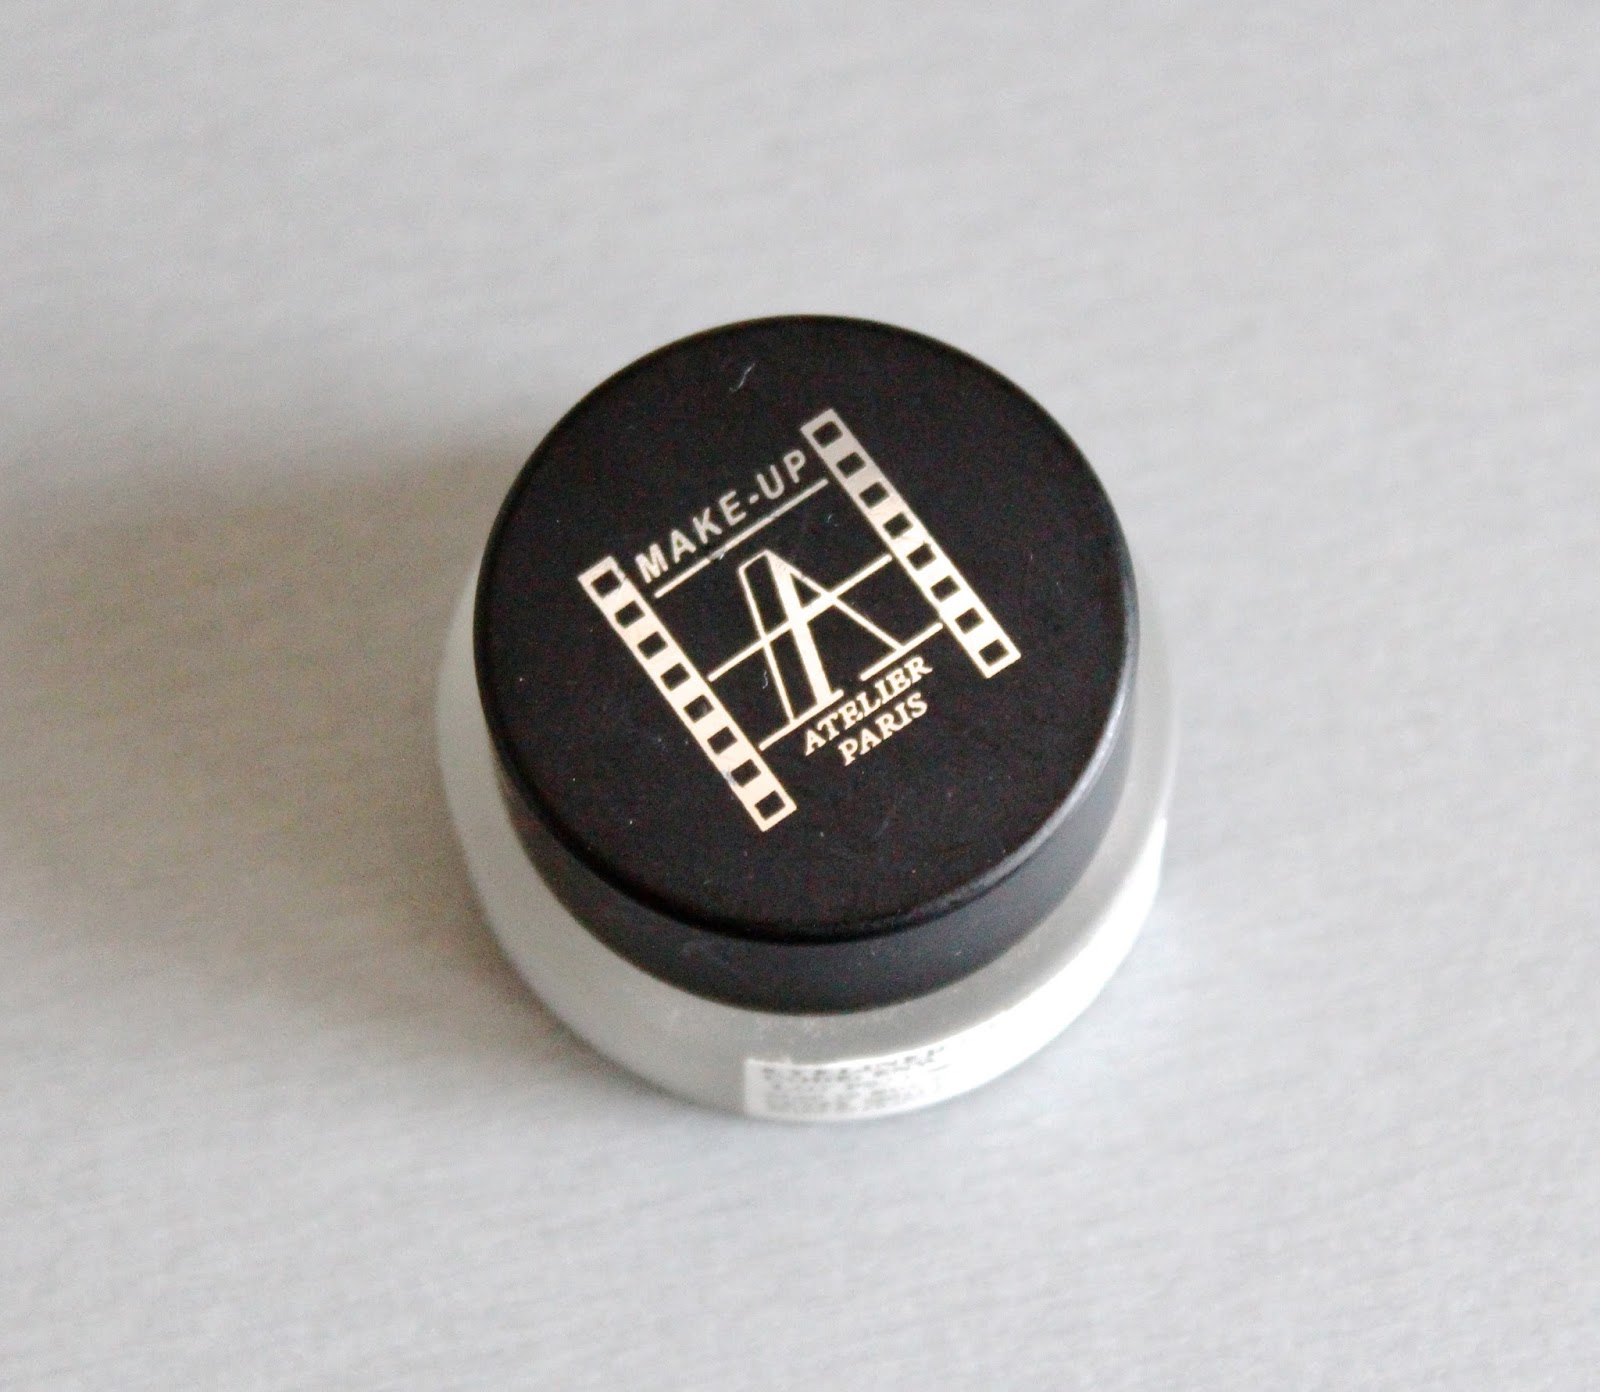 Make-Up Atelier Paris Gel Eyeliner - recenzija